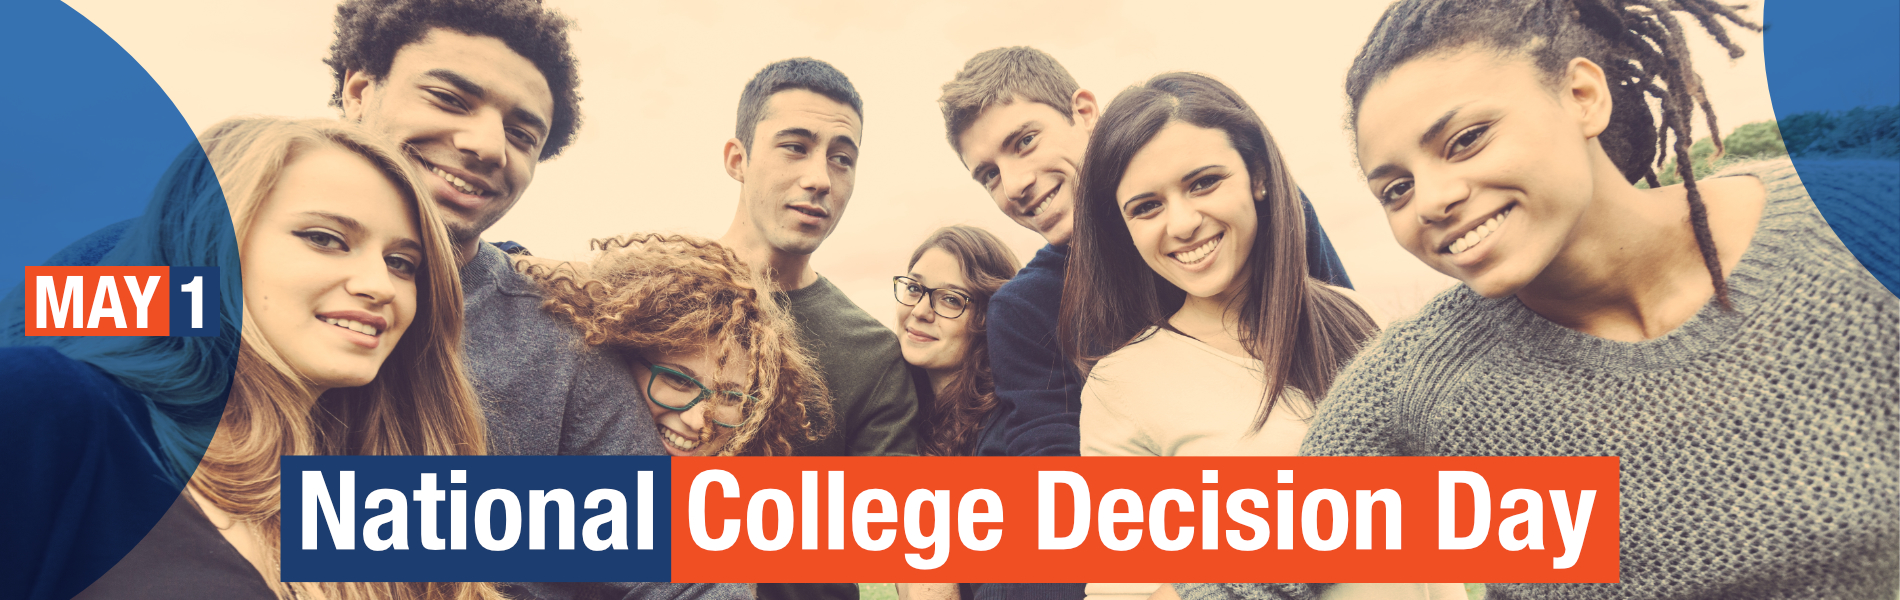 May 1st is College Decision Day!